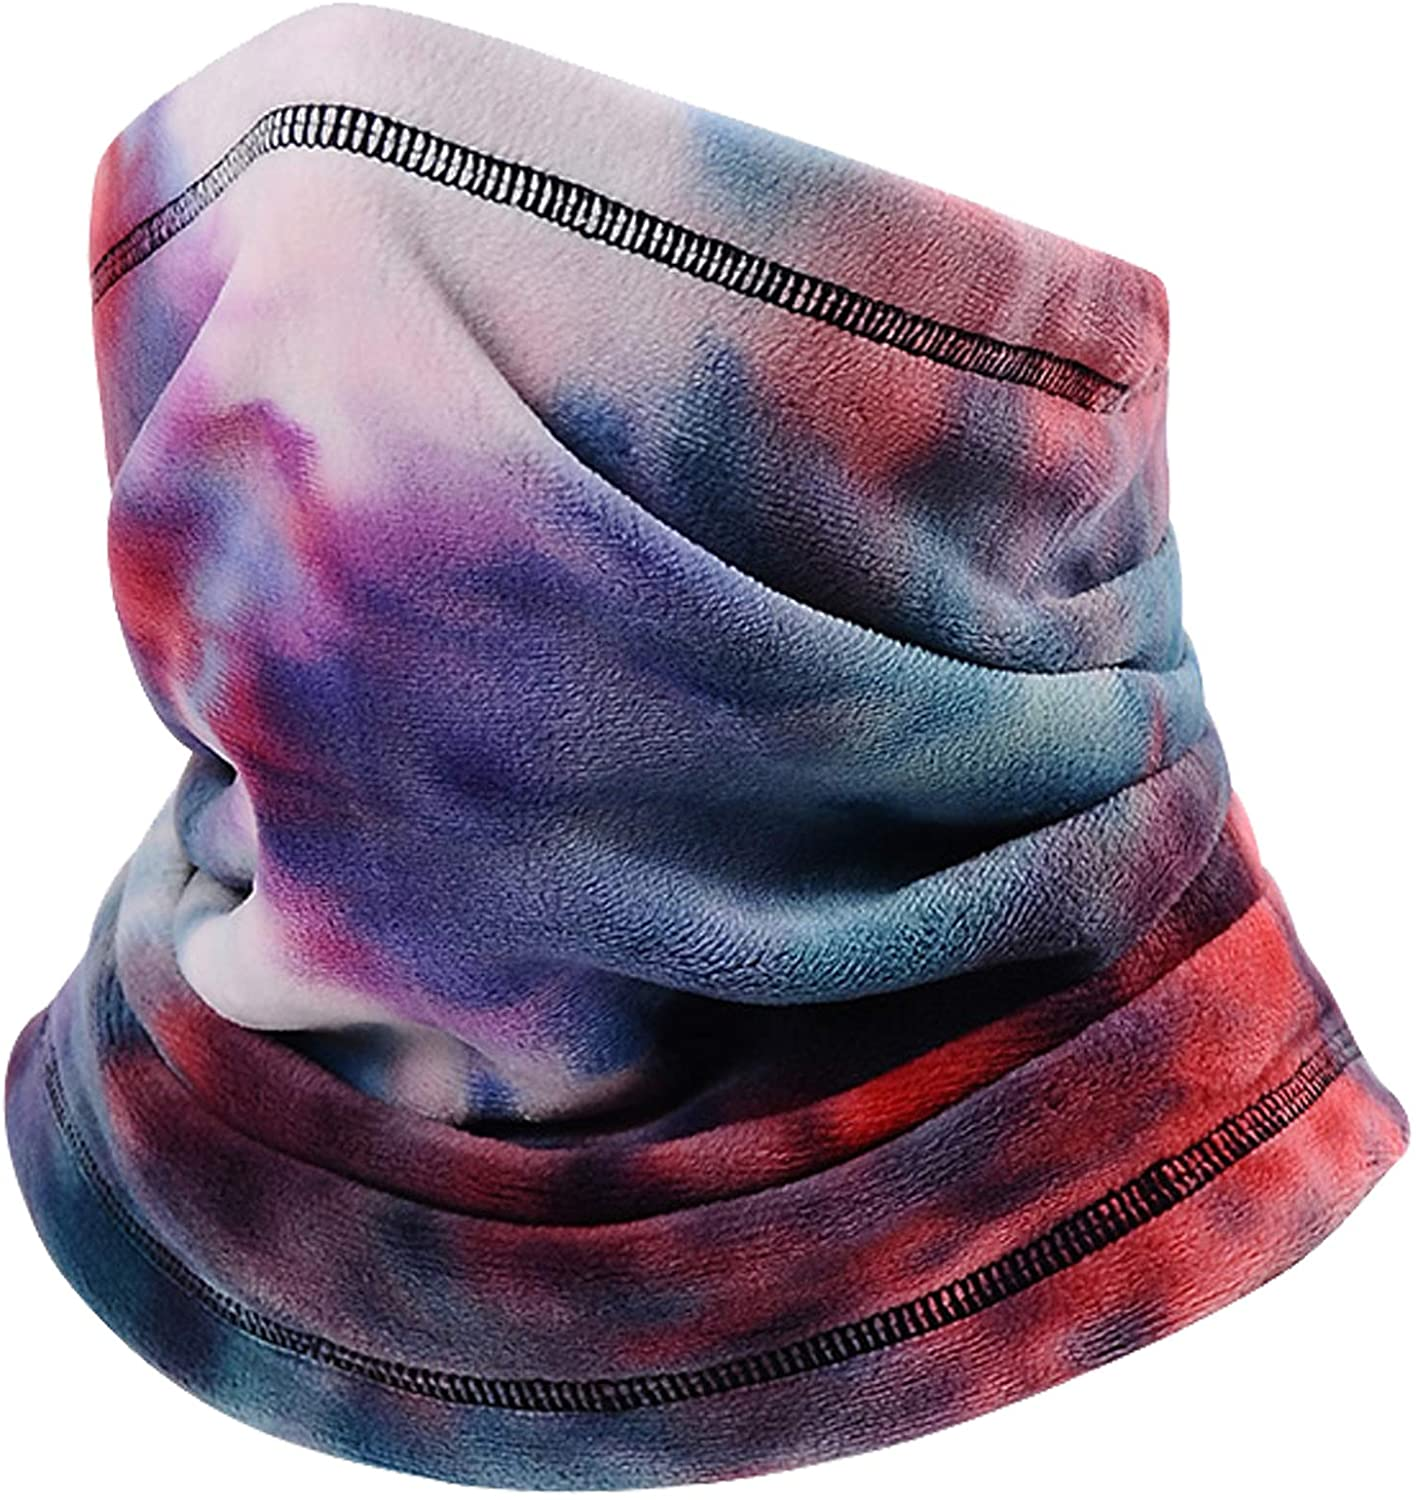 LANVO Fleece Neck Gaiter Warmer Face Mask, Adjustable Winter Neck Warmer Scarf for Men & Wowen for Skiing, Hiking, Running, Snowboard and Outdoor Sports Face Mask